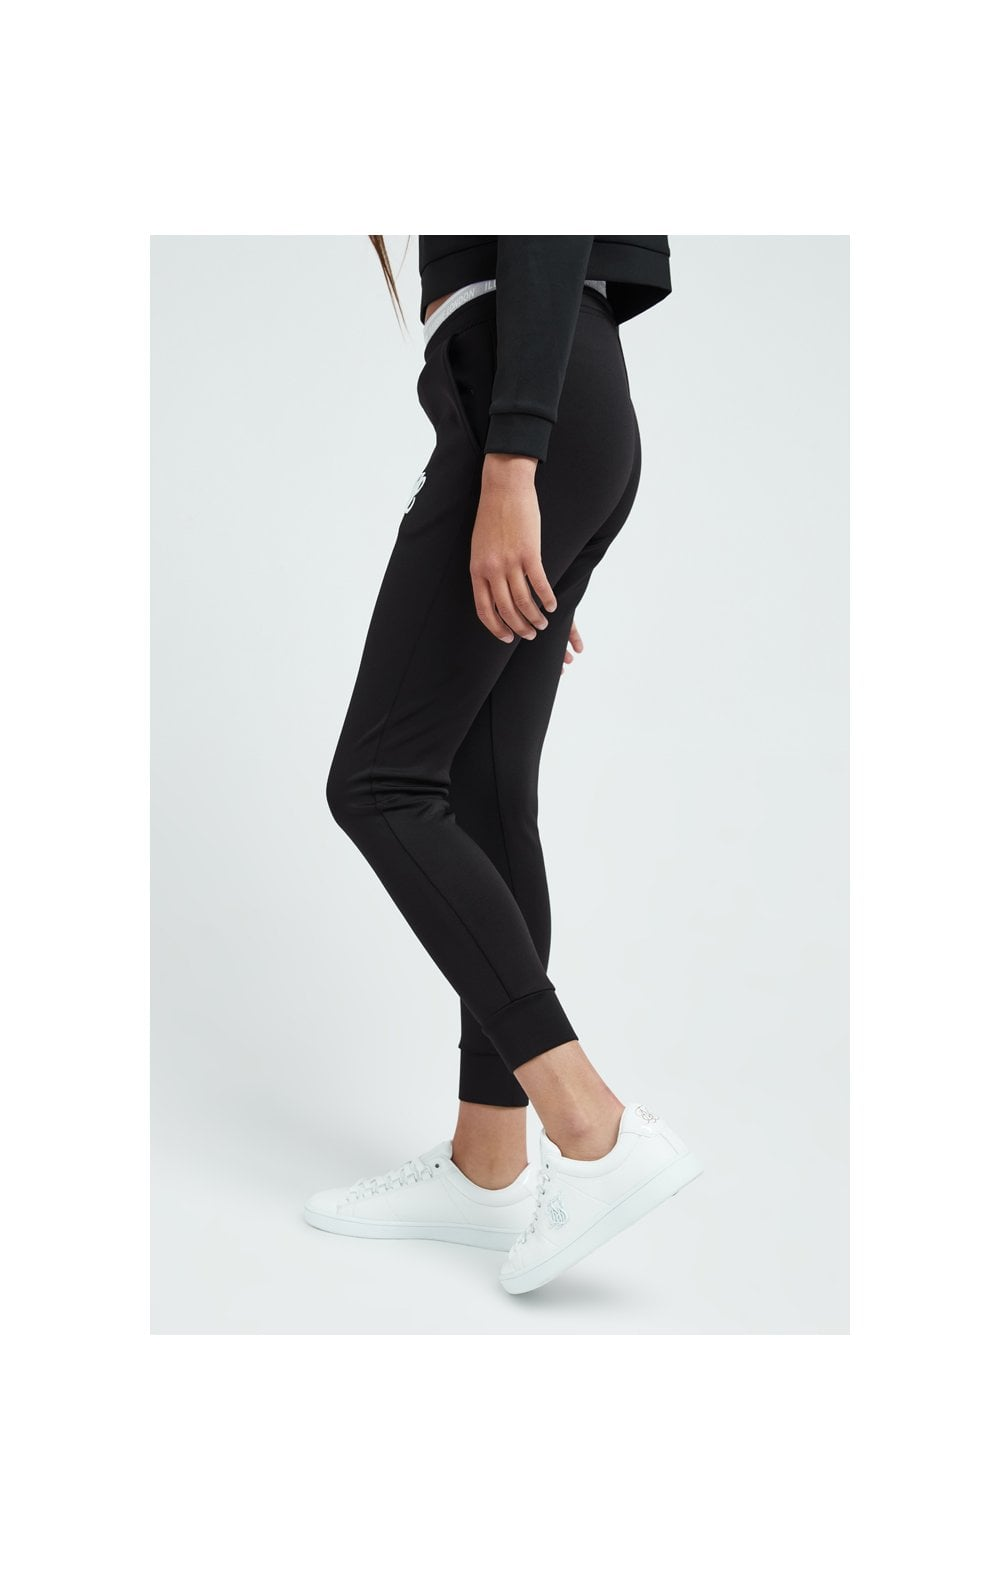 Load image into Gallery viewer, Illusive London Tape Track Pants - Black (2)